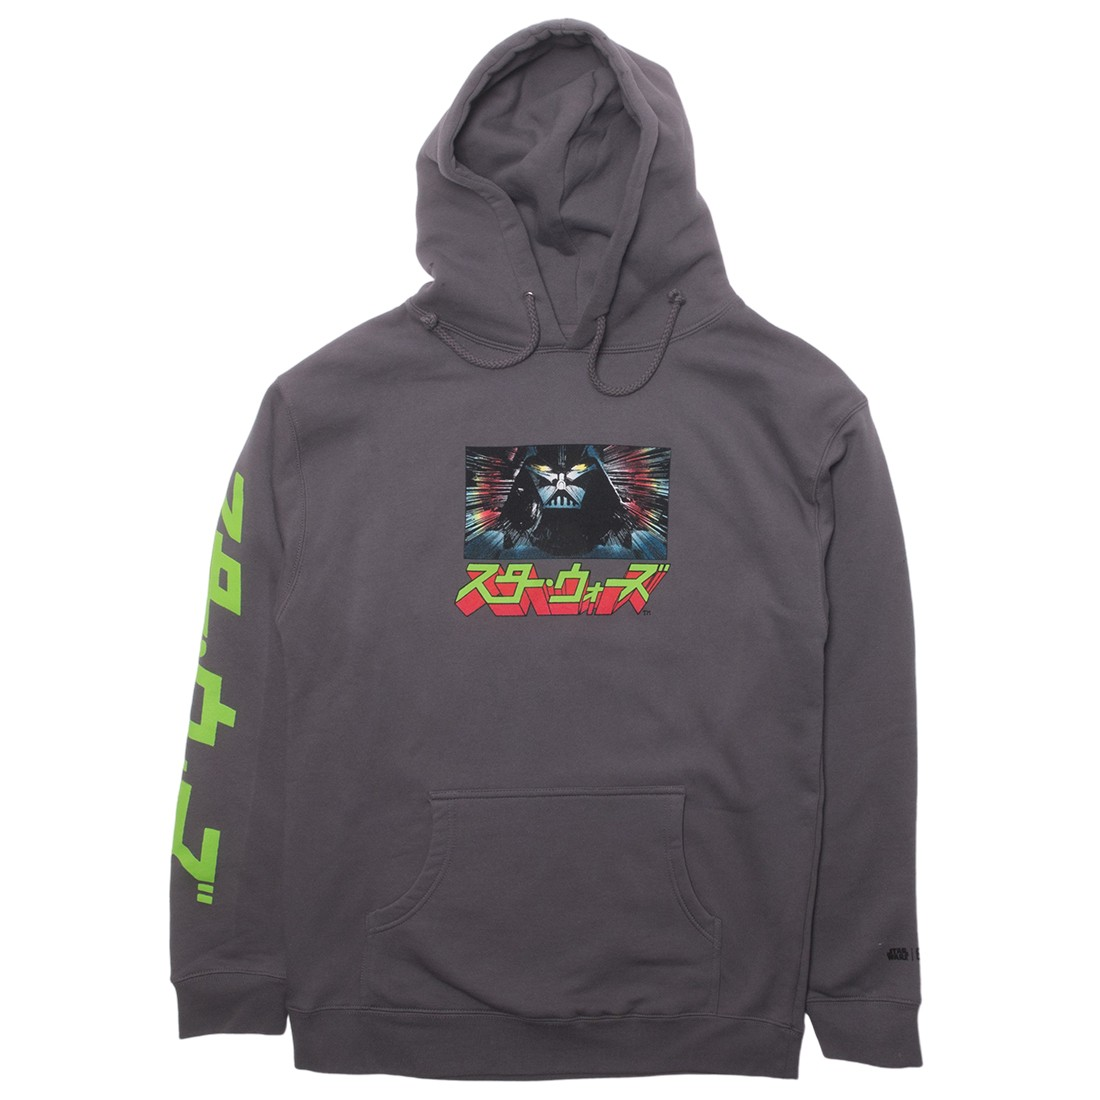 BAIT x Star Wars Manga Men The Tale of Skywalkers Hoody (gray / charcoal)